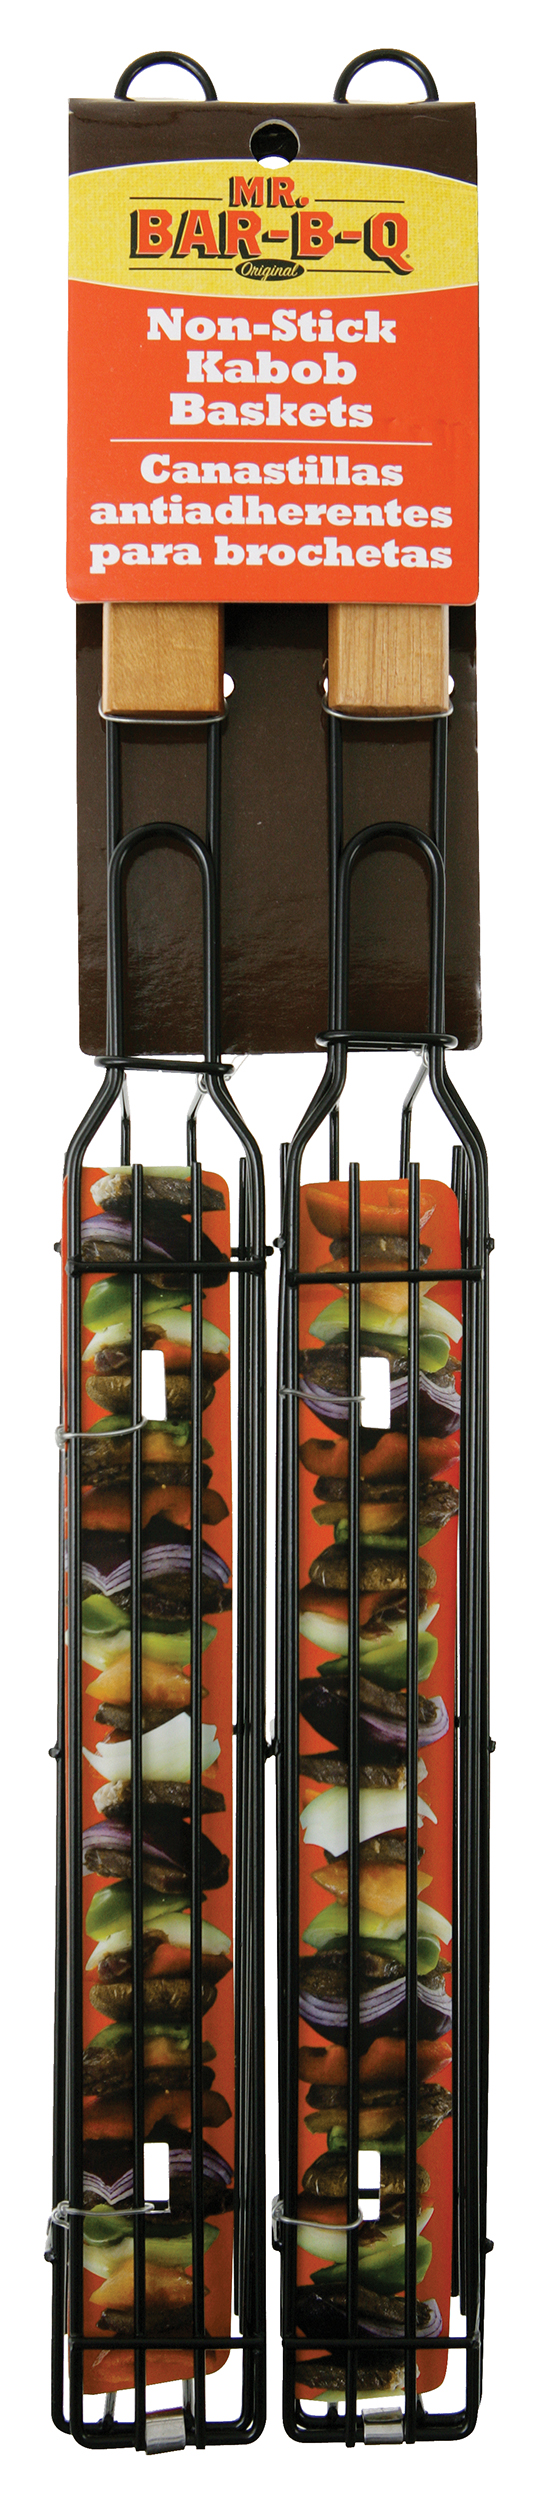 Two Pack Kit - Single NON-STICK Kebab Baskets